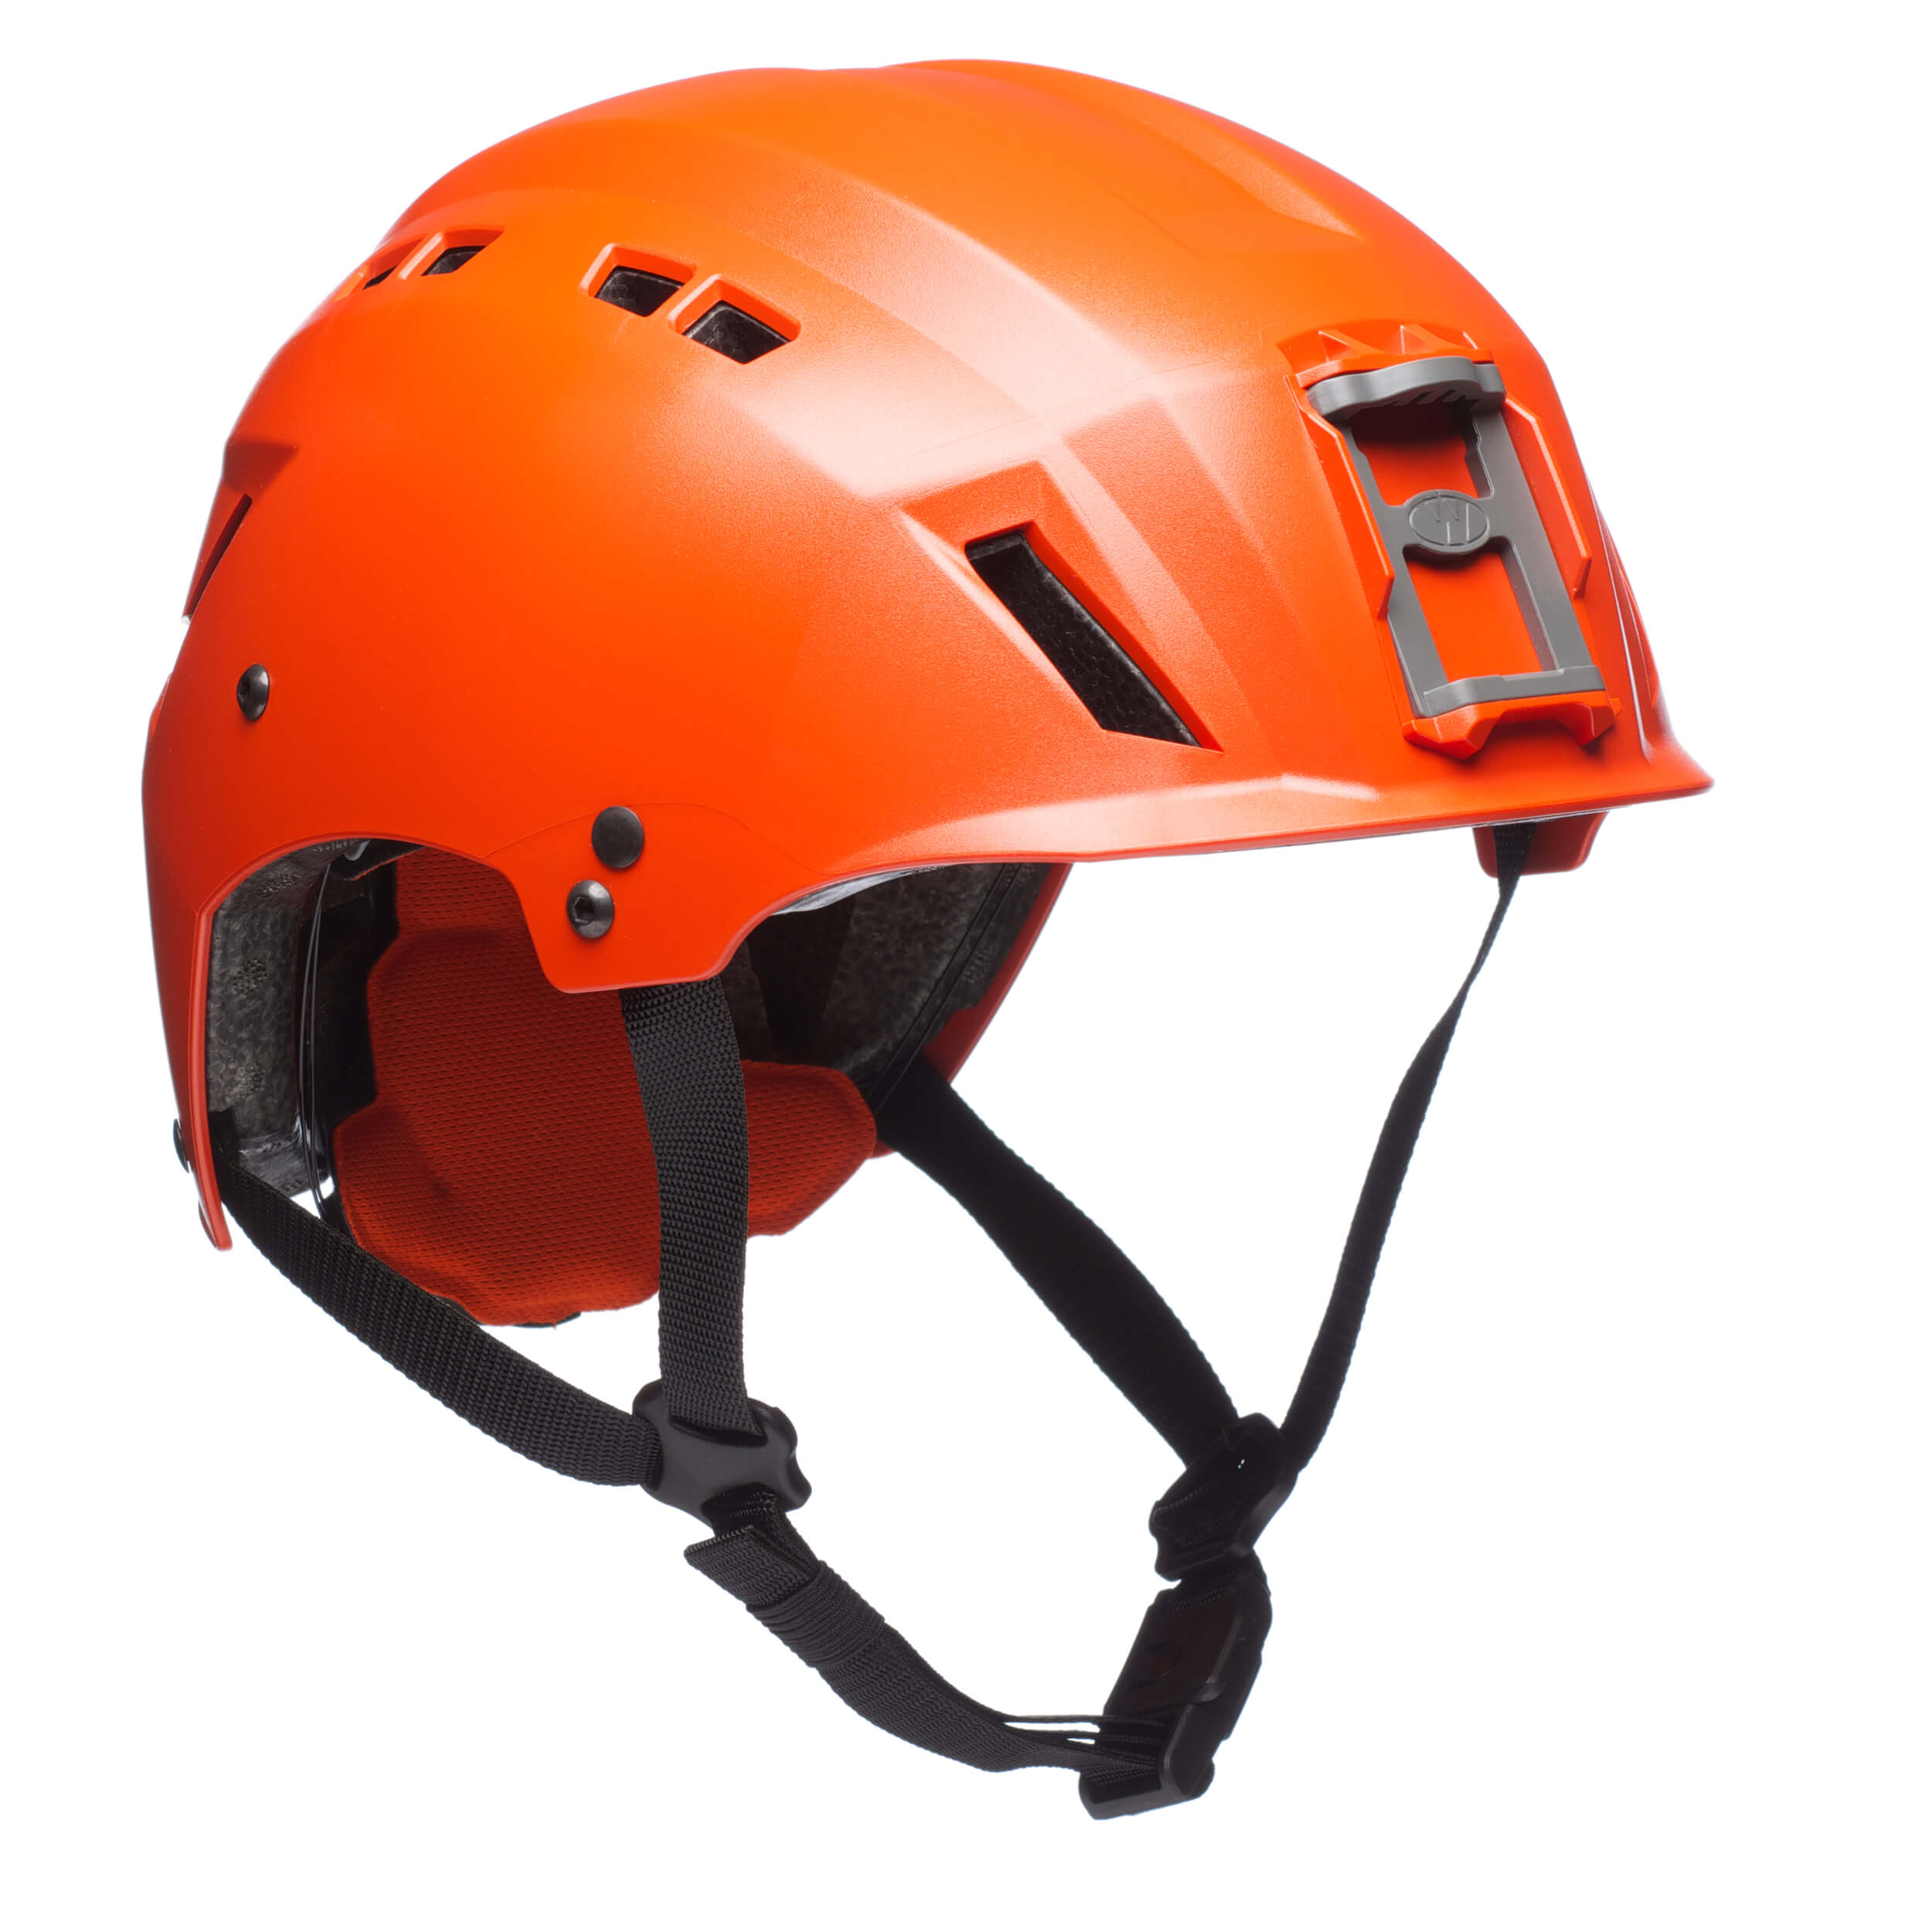 Team Wendy EXFIL SAR Backcountry Helmet orange